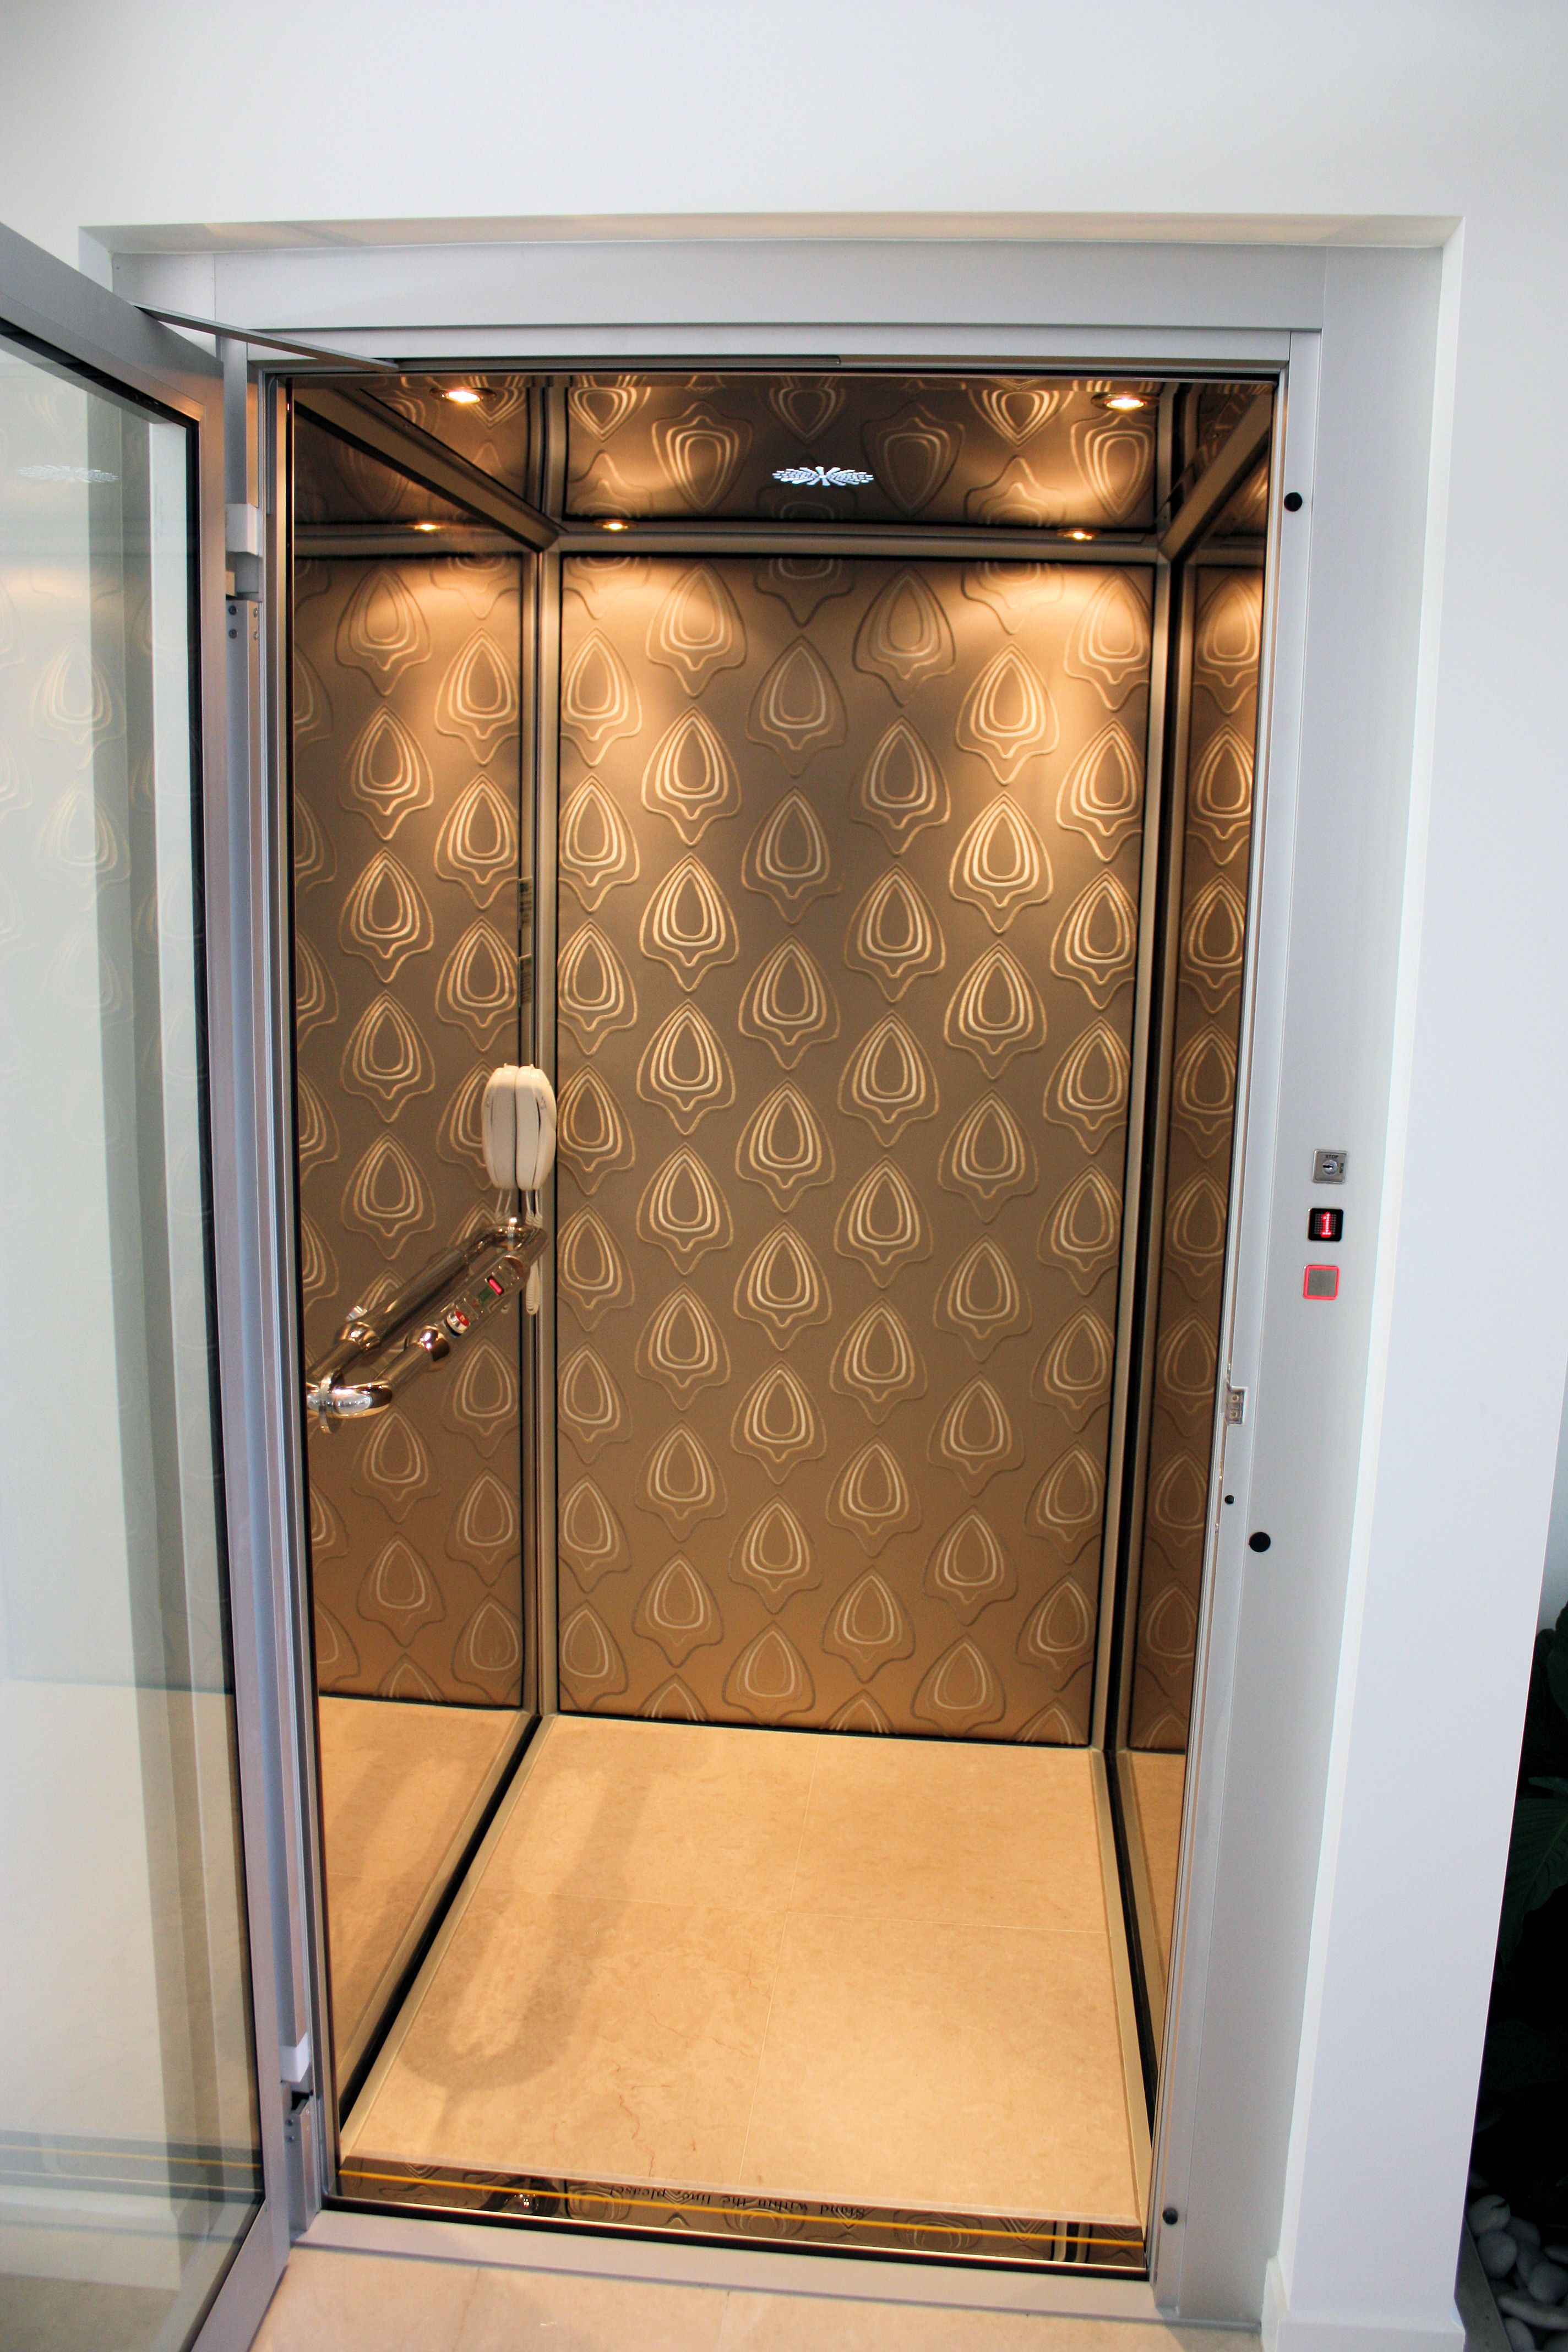 Residential Elevator Designs And Styles | Business Directory And FREE  Referral Service Connecting You To Home